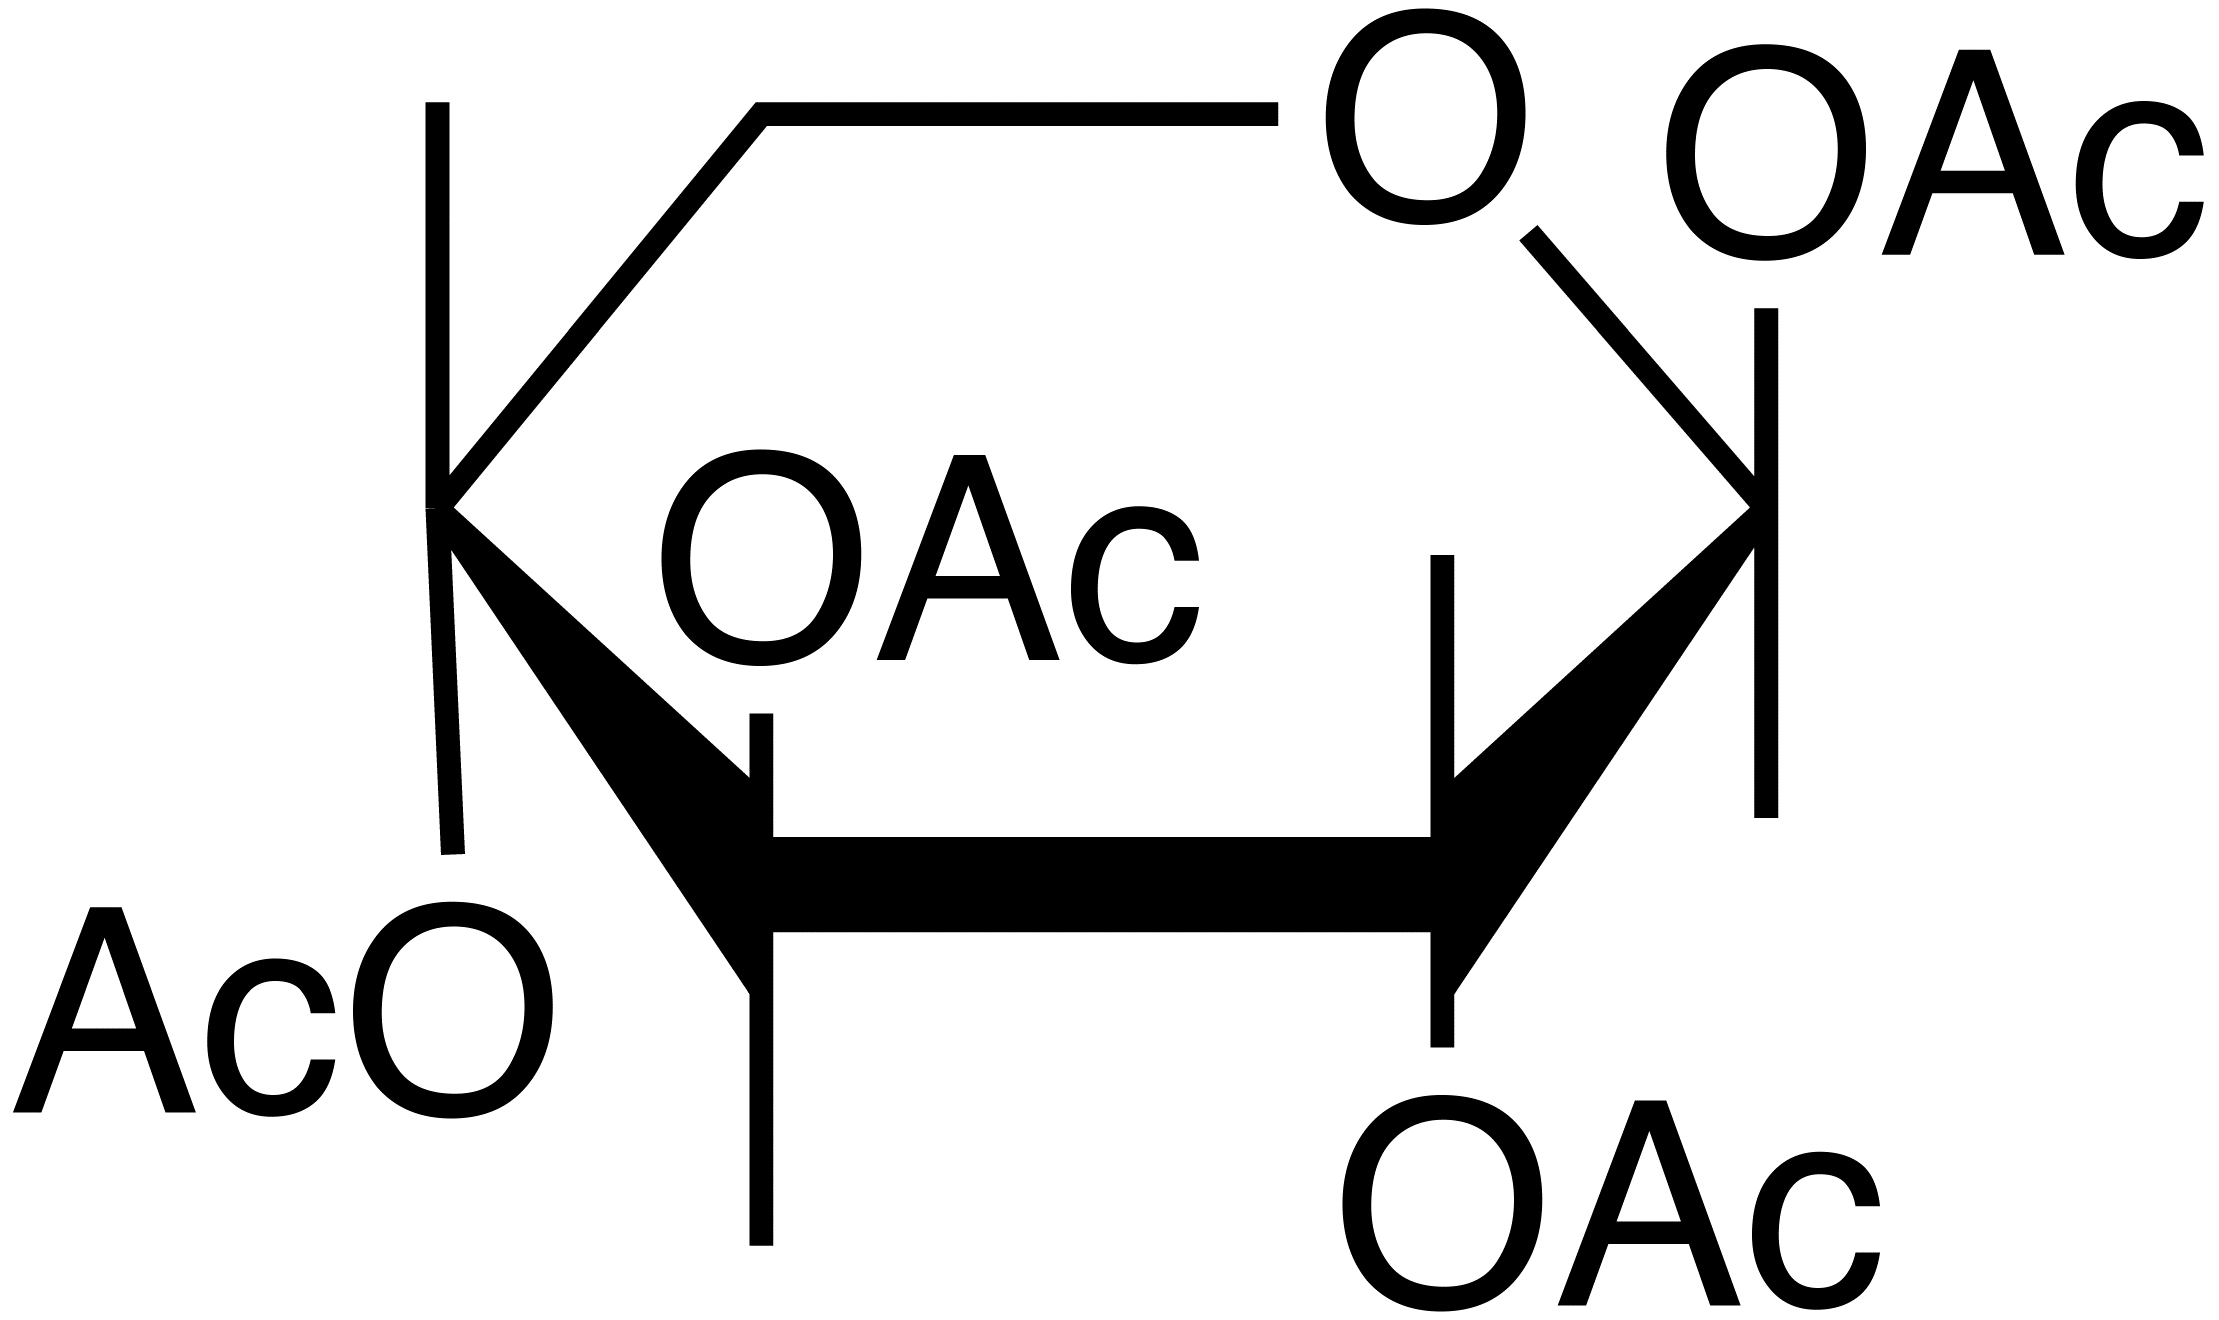 alpha,beta Xylose Acetate image